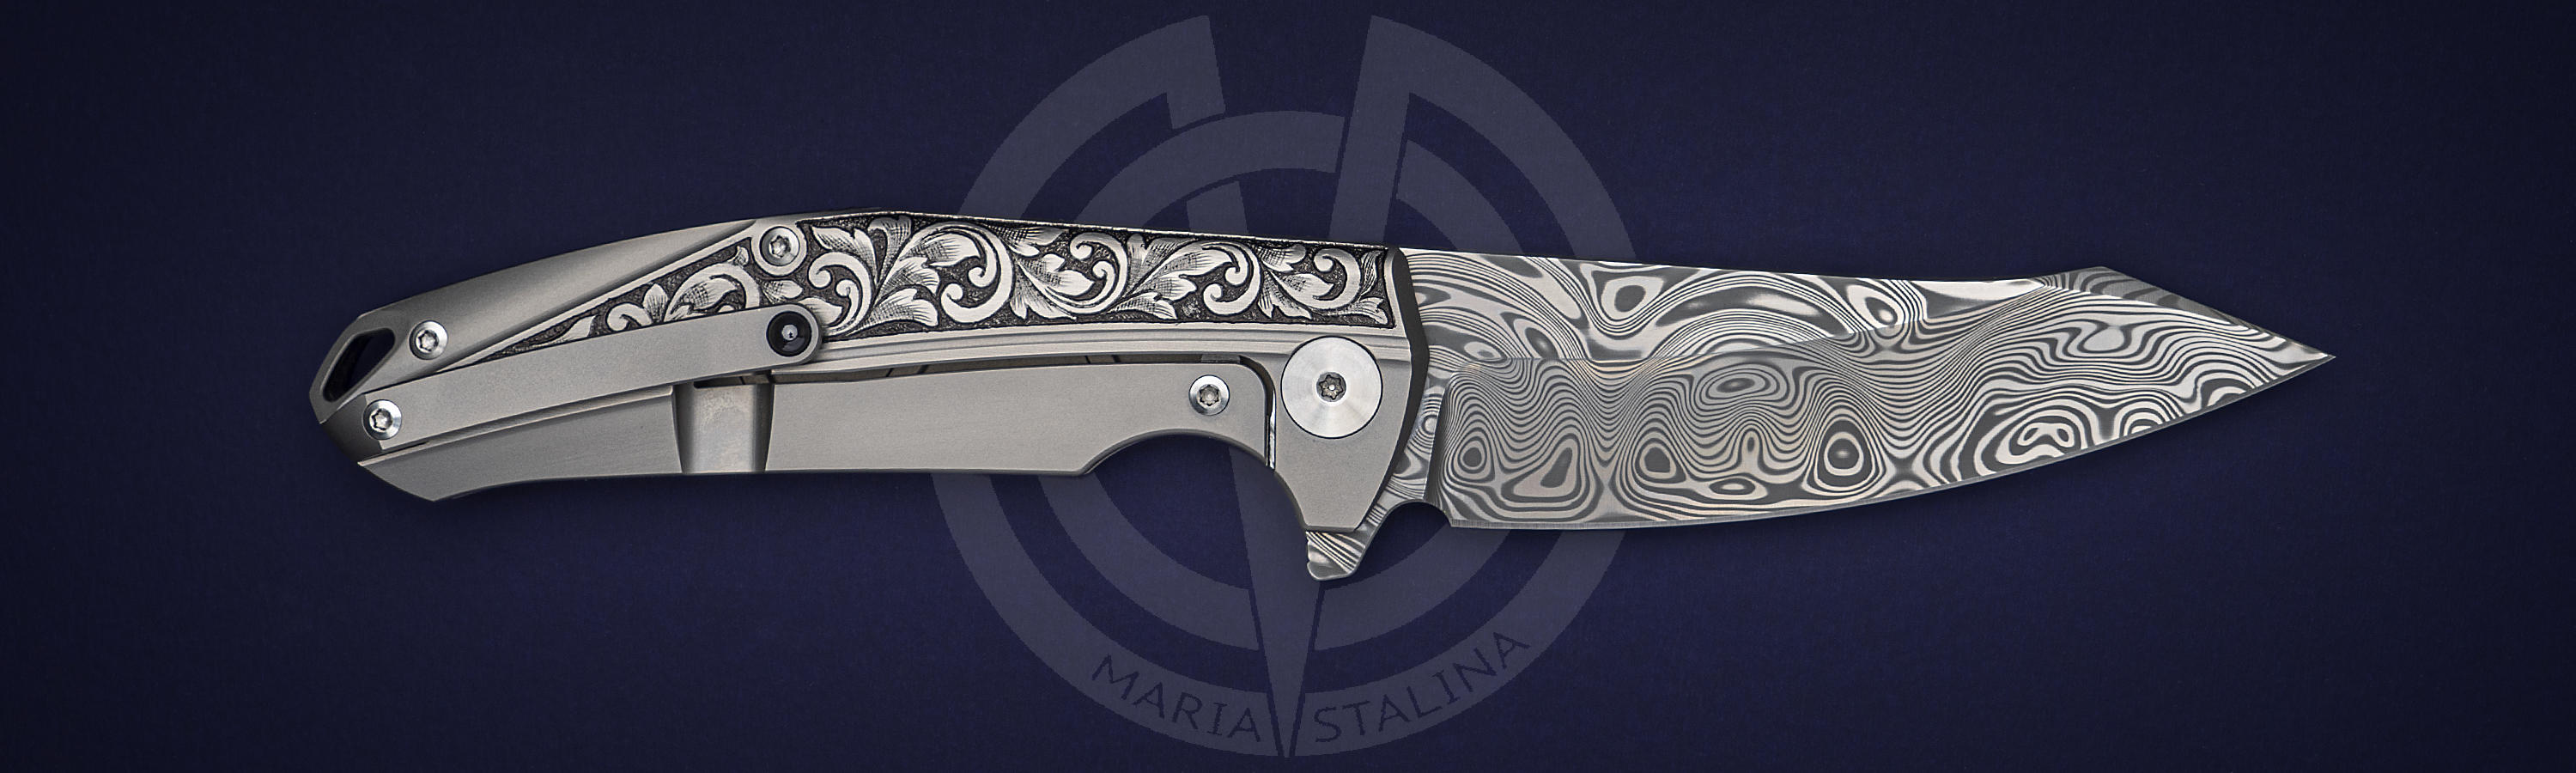 Engraving knife K1